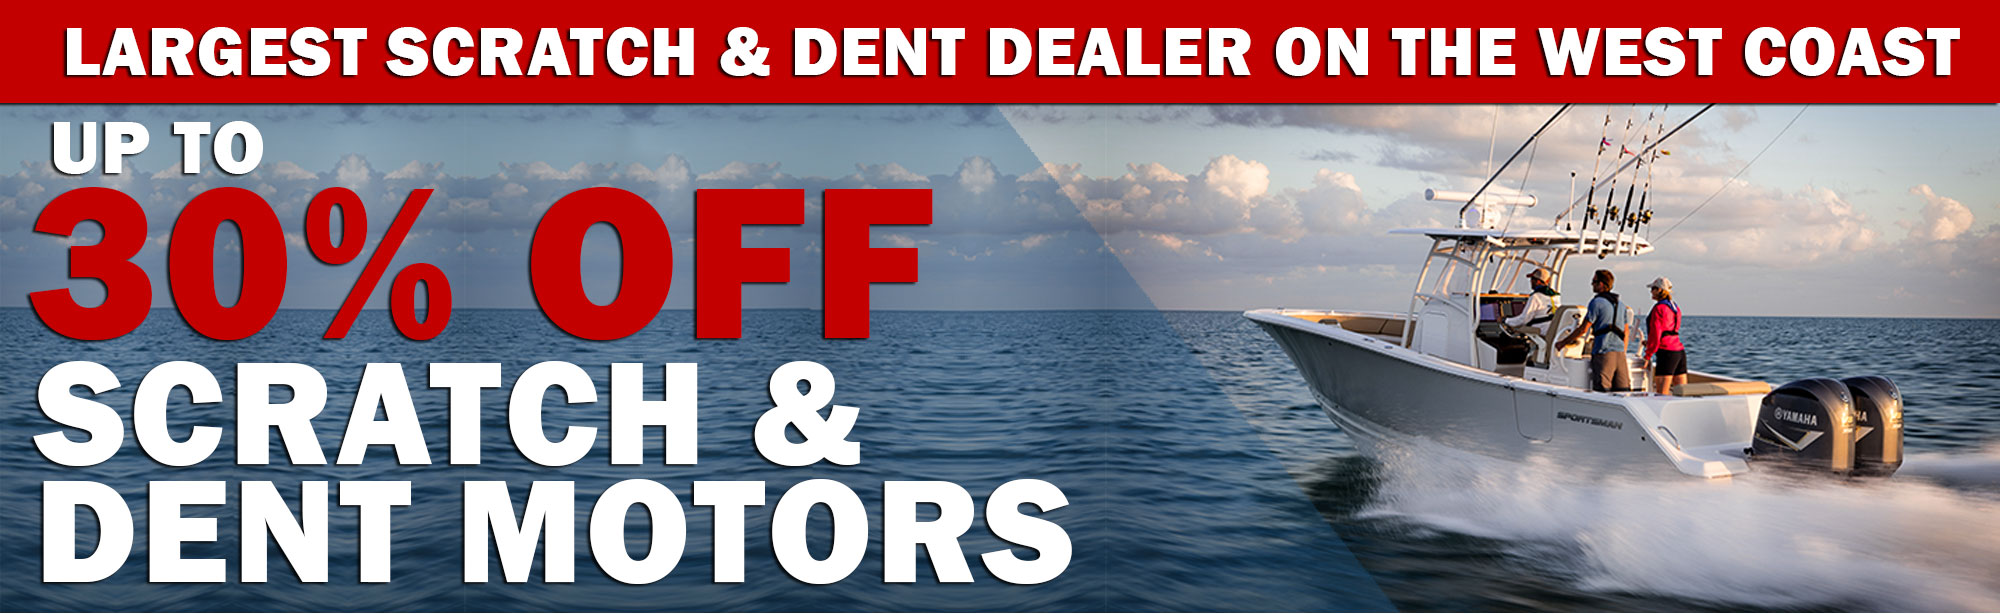 Up to 30% off Blemished Outboards